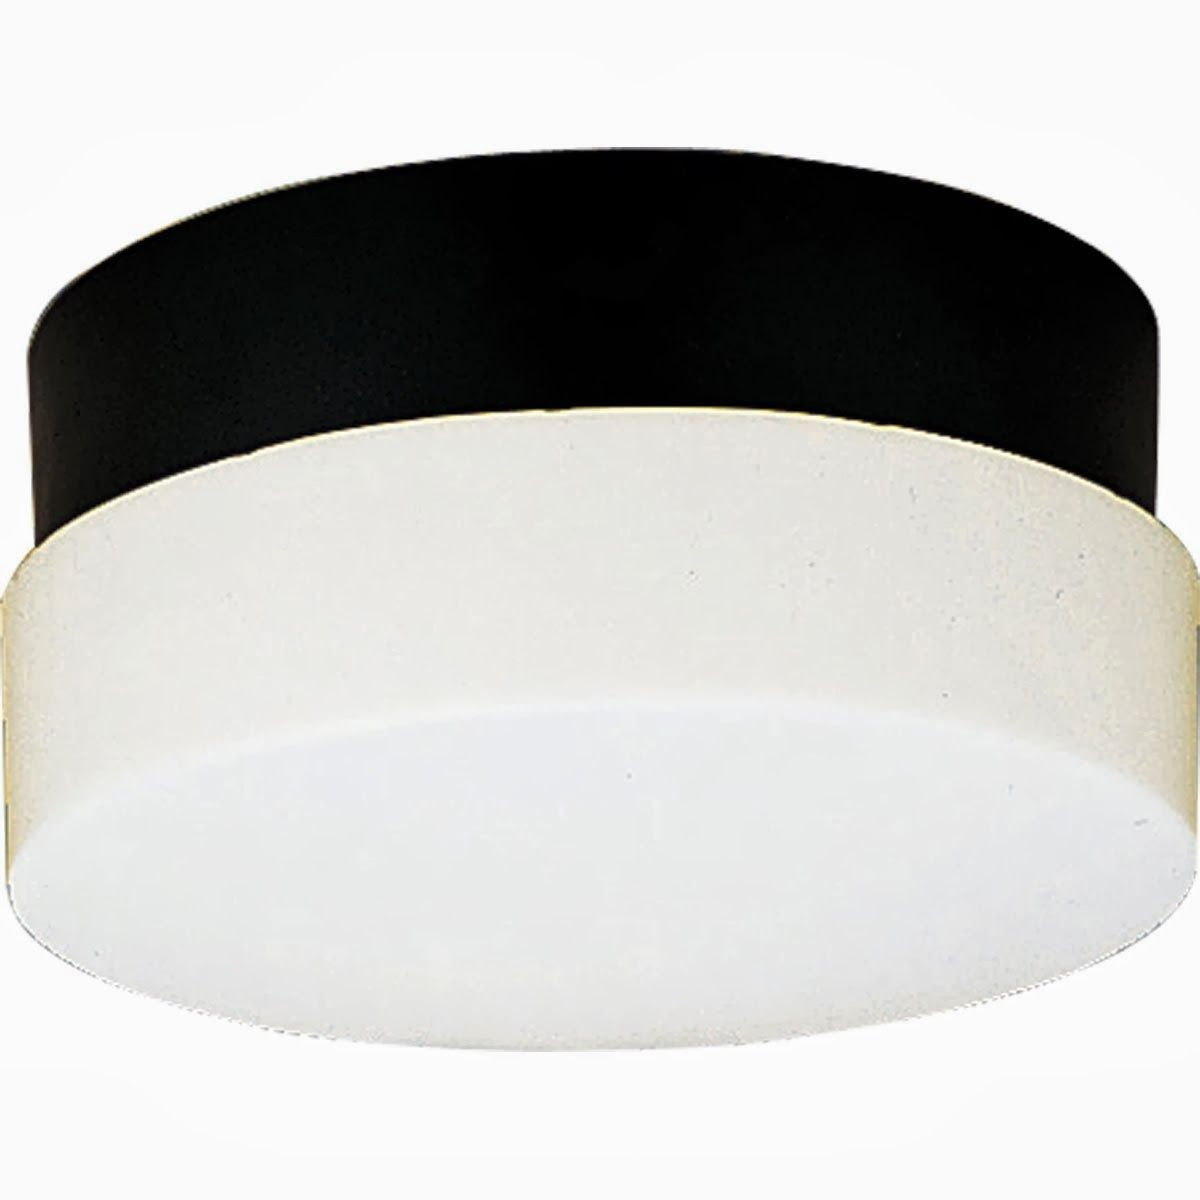 mid century modern flush mount ceiling light see when you walk